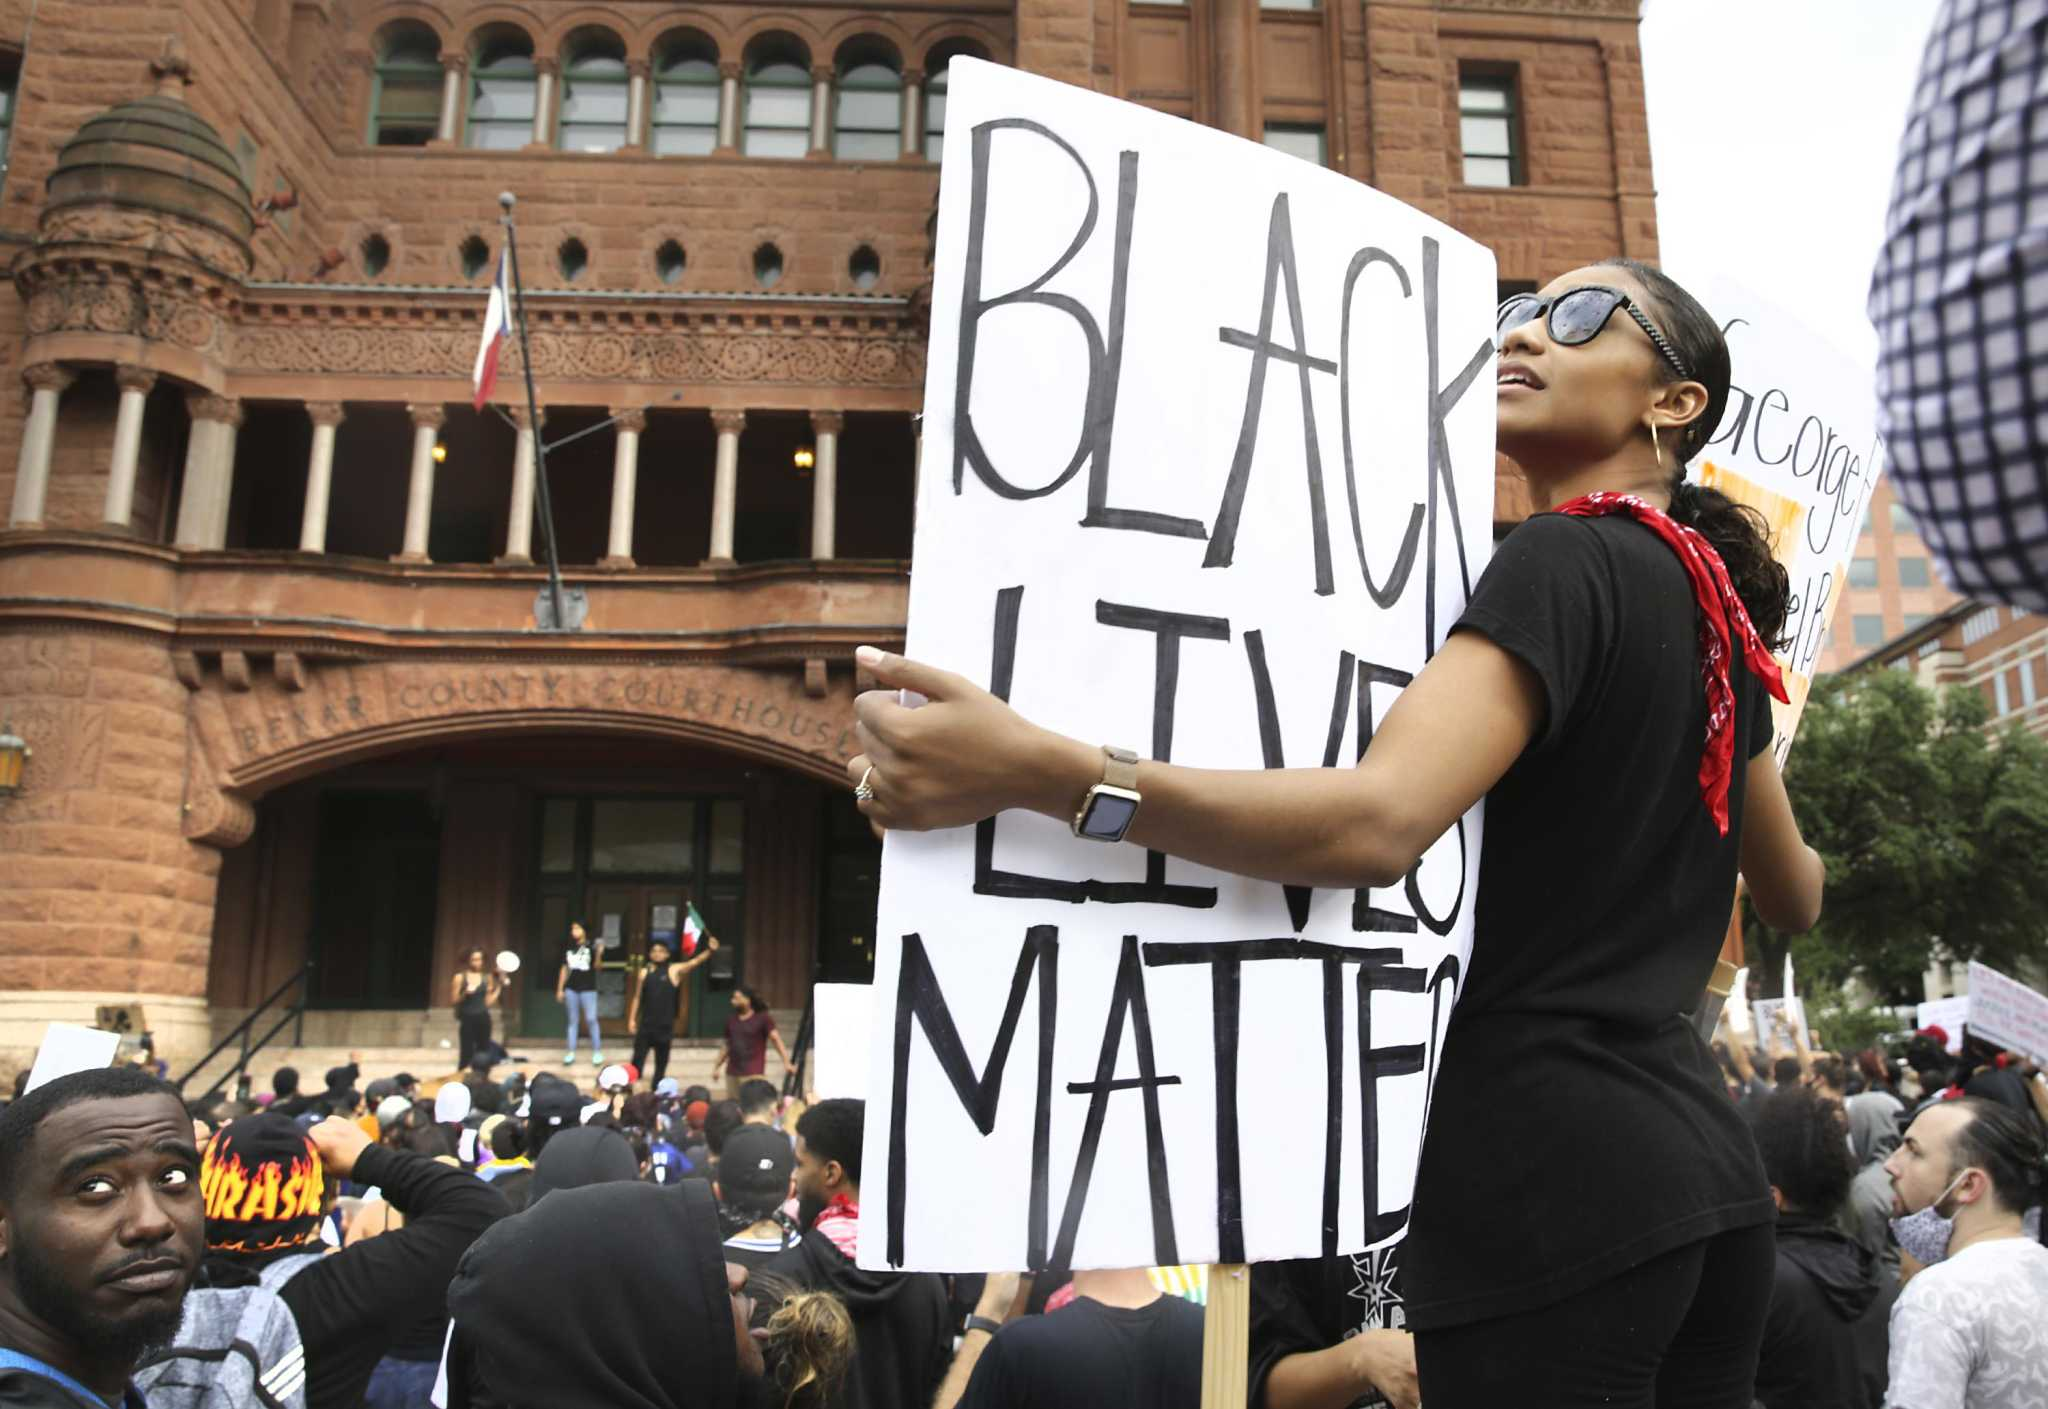 San Antonio's fourth day of George Floyd protests ends in violence